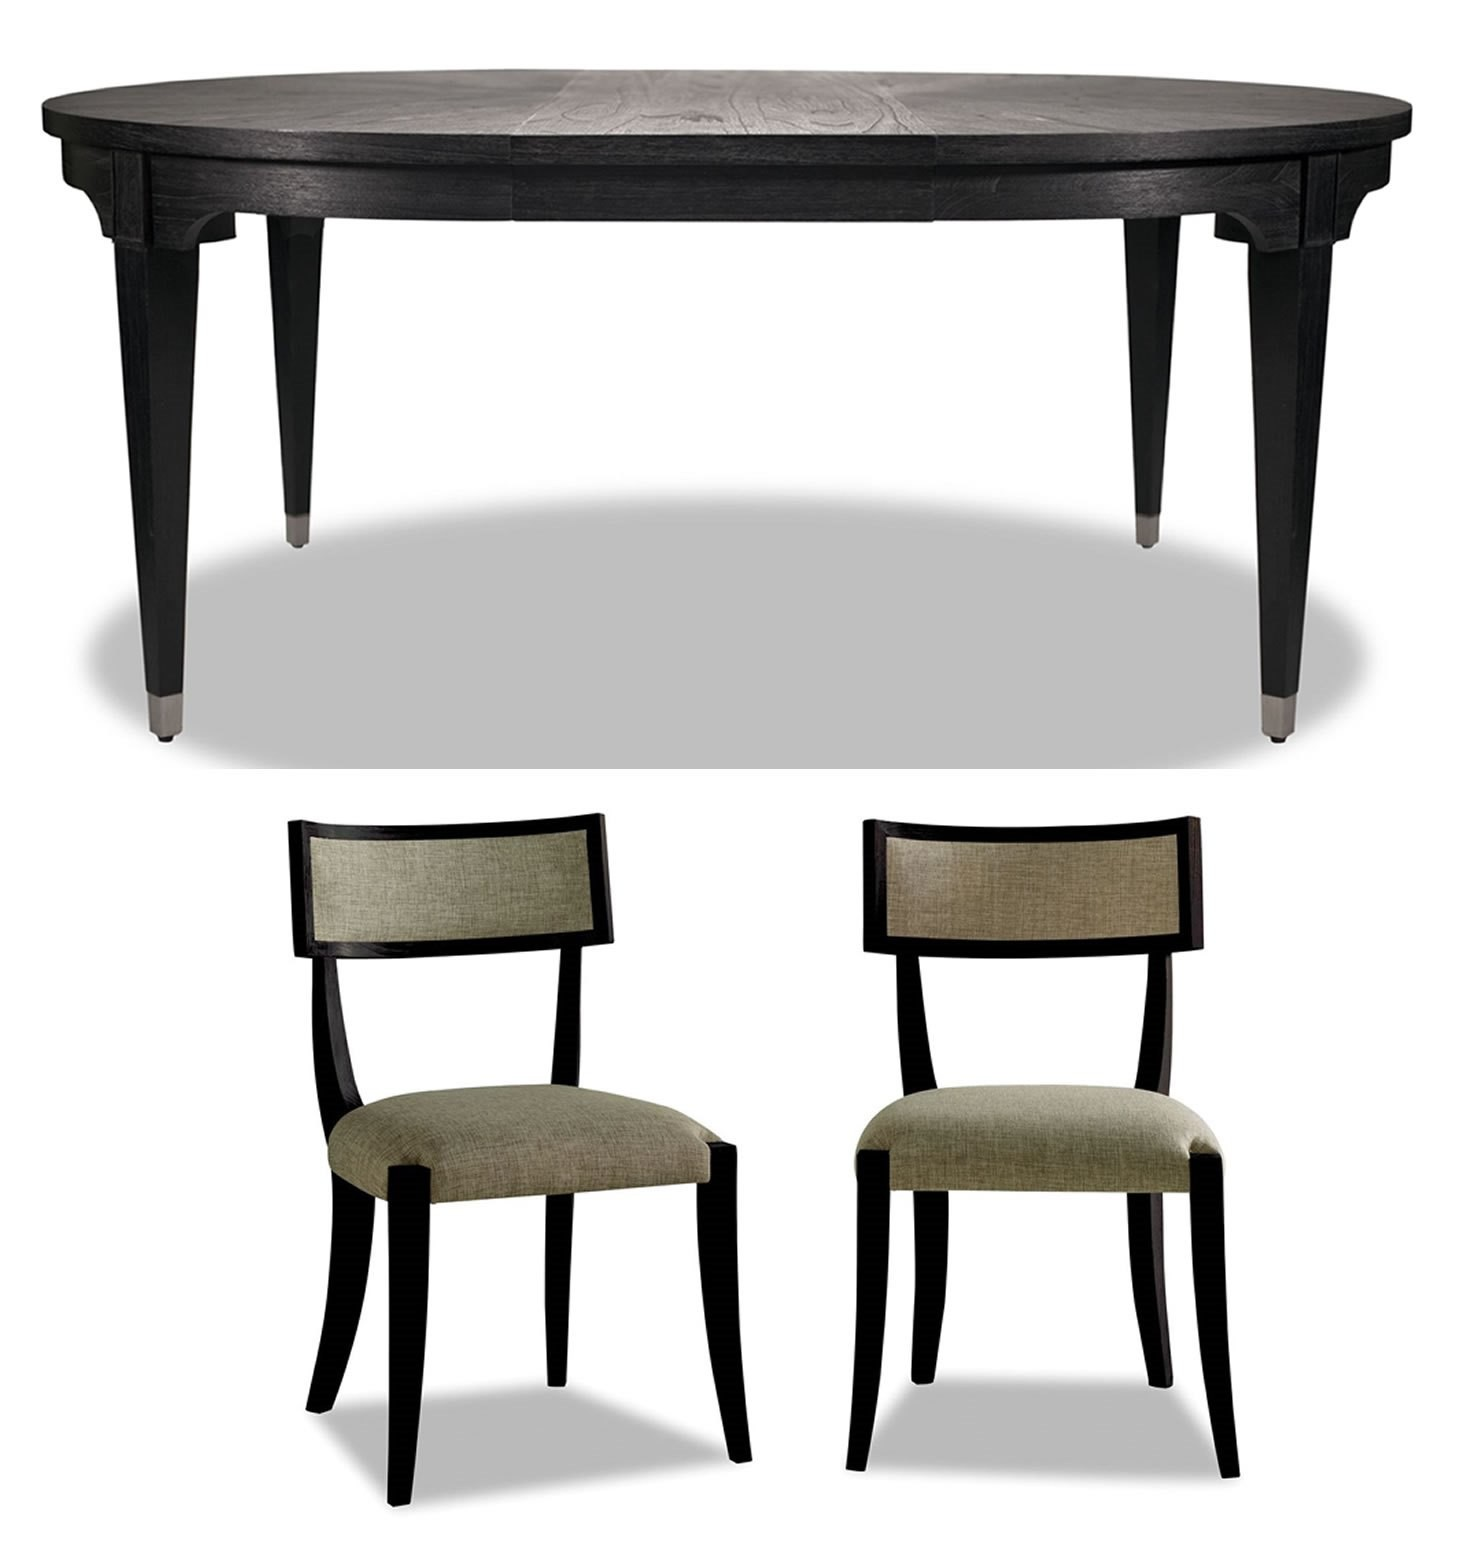 Atherton Onyx Extendable Dining Room Set from Brownstone  : athertonblackocc1 from colemanfurniture.com size 1478 x 1556 jpeg 139kB